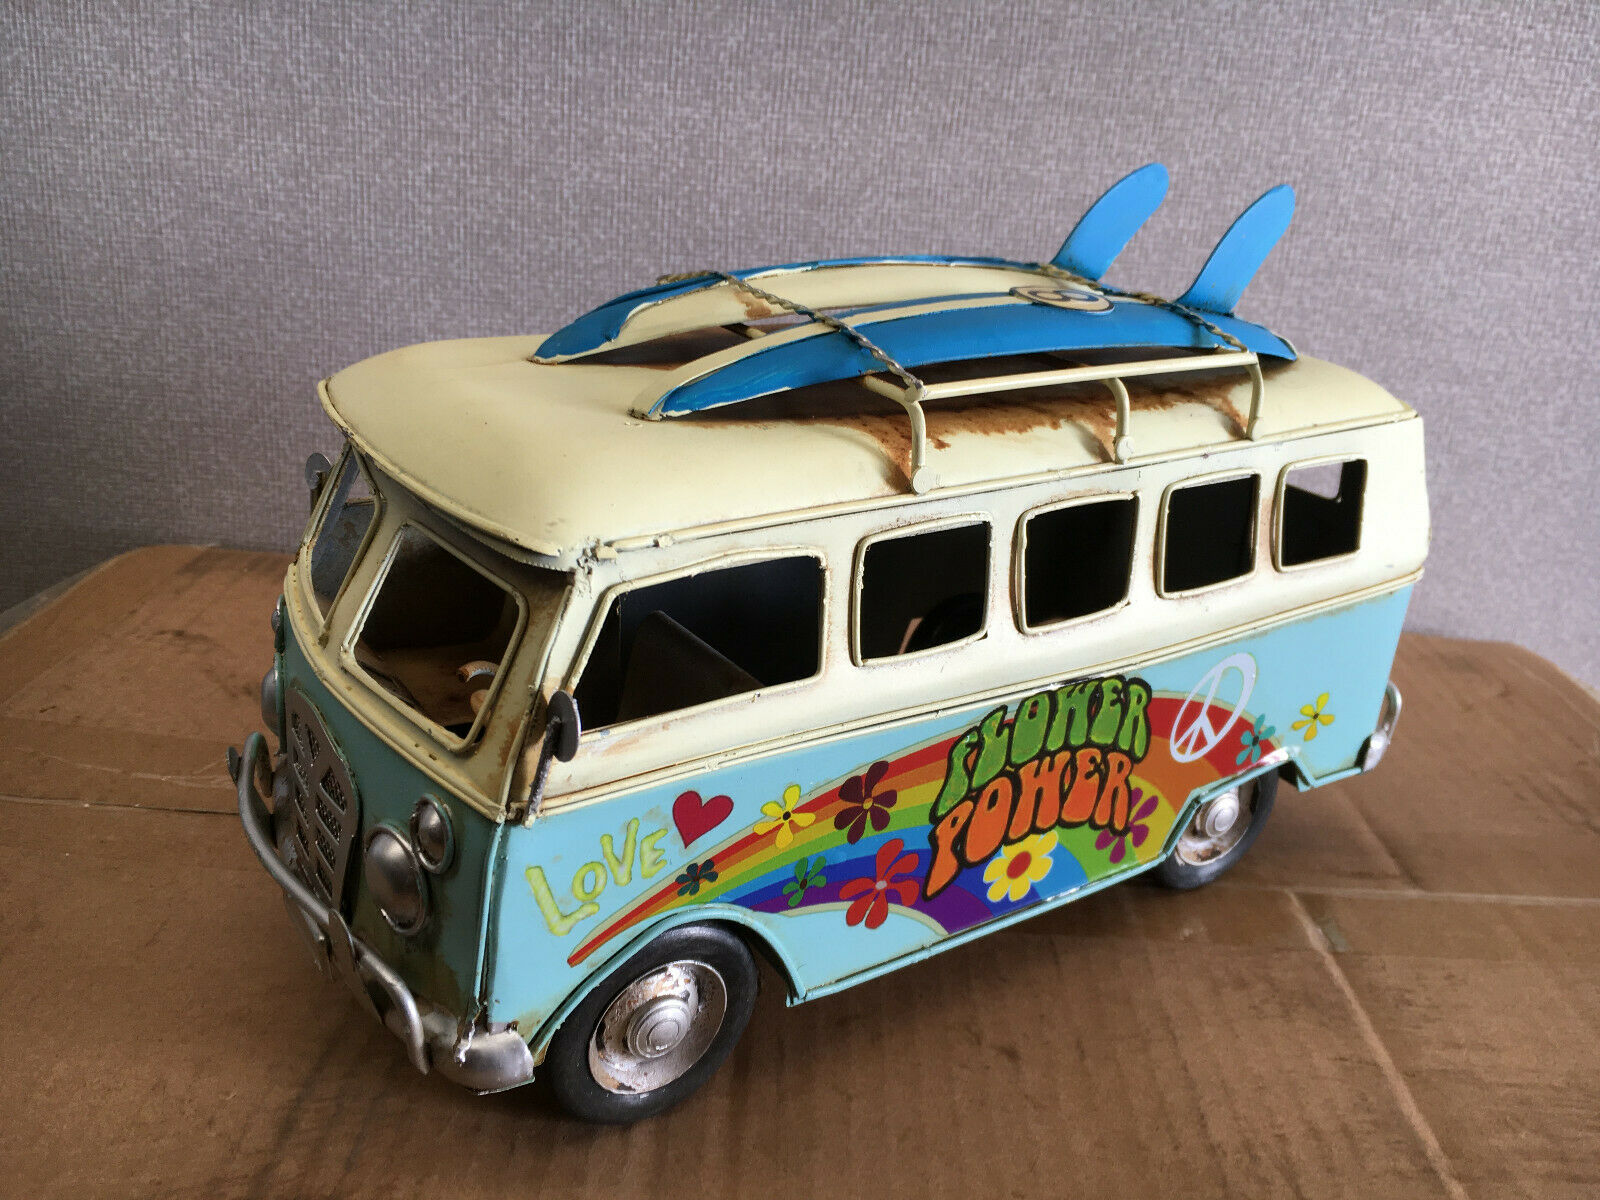 bluee Tin Vintage Flower Power Camper Van With Surf Boards Model